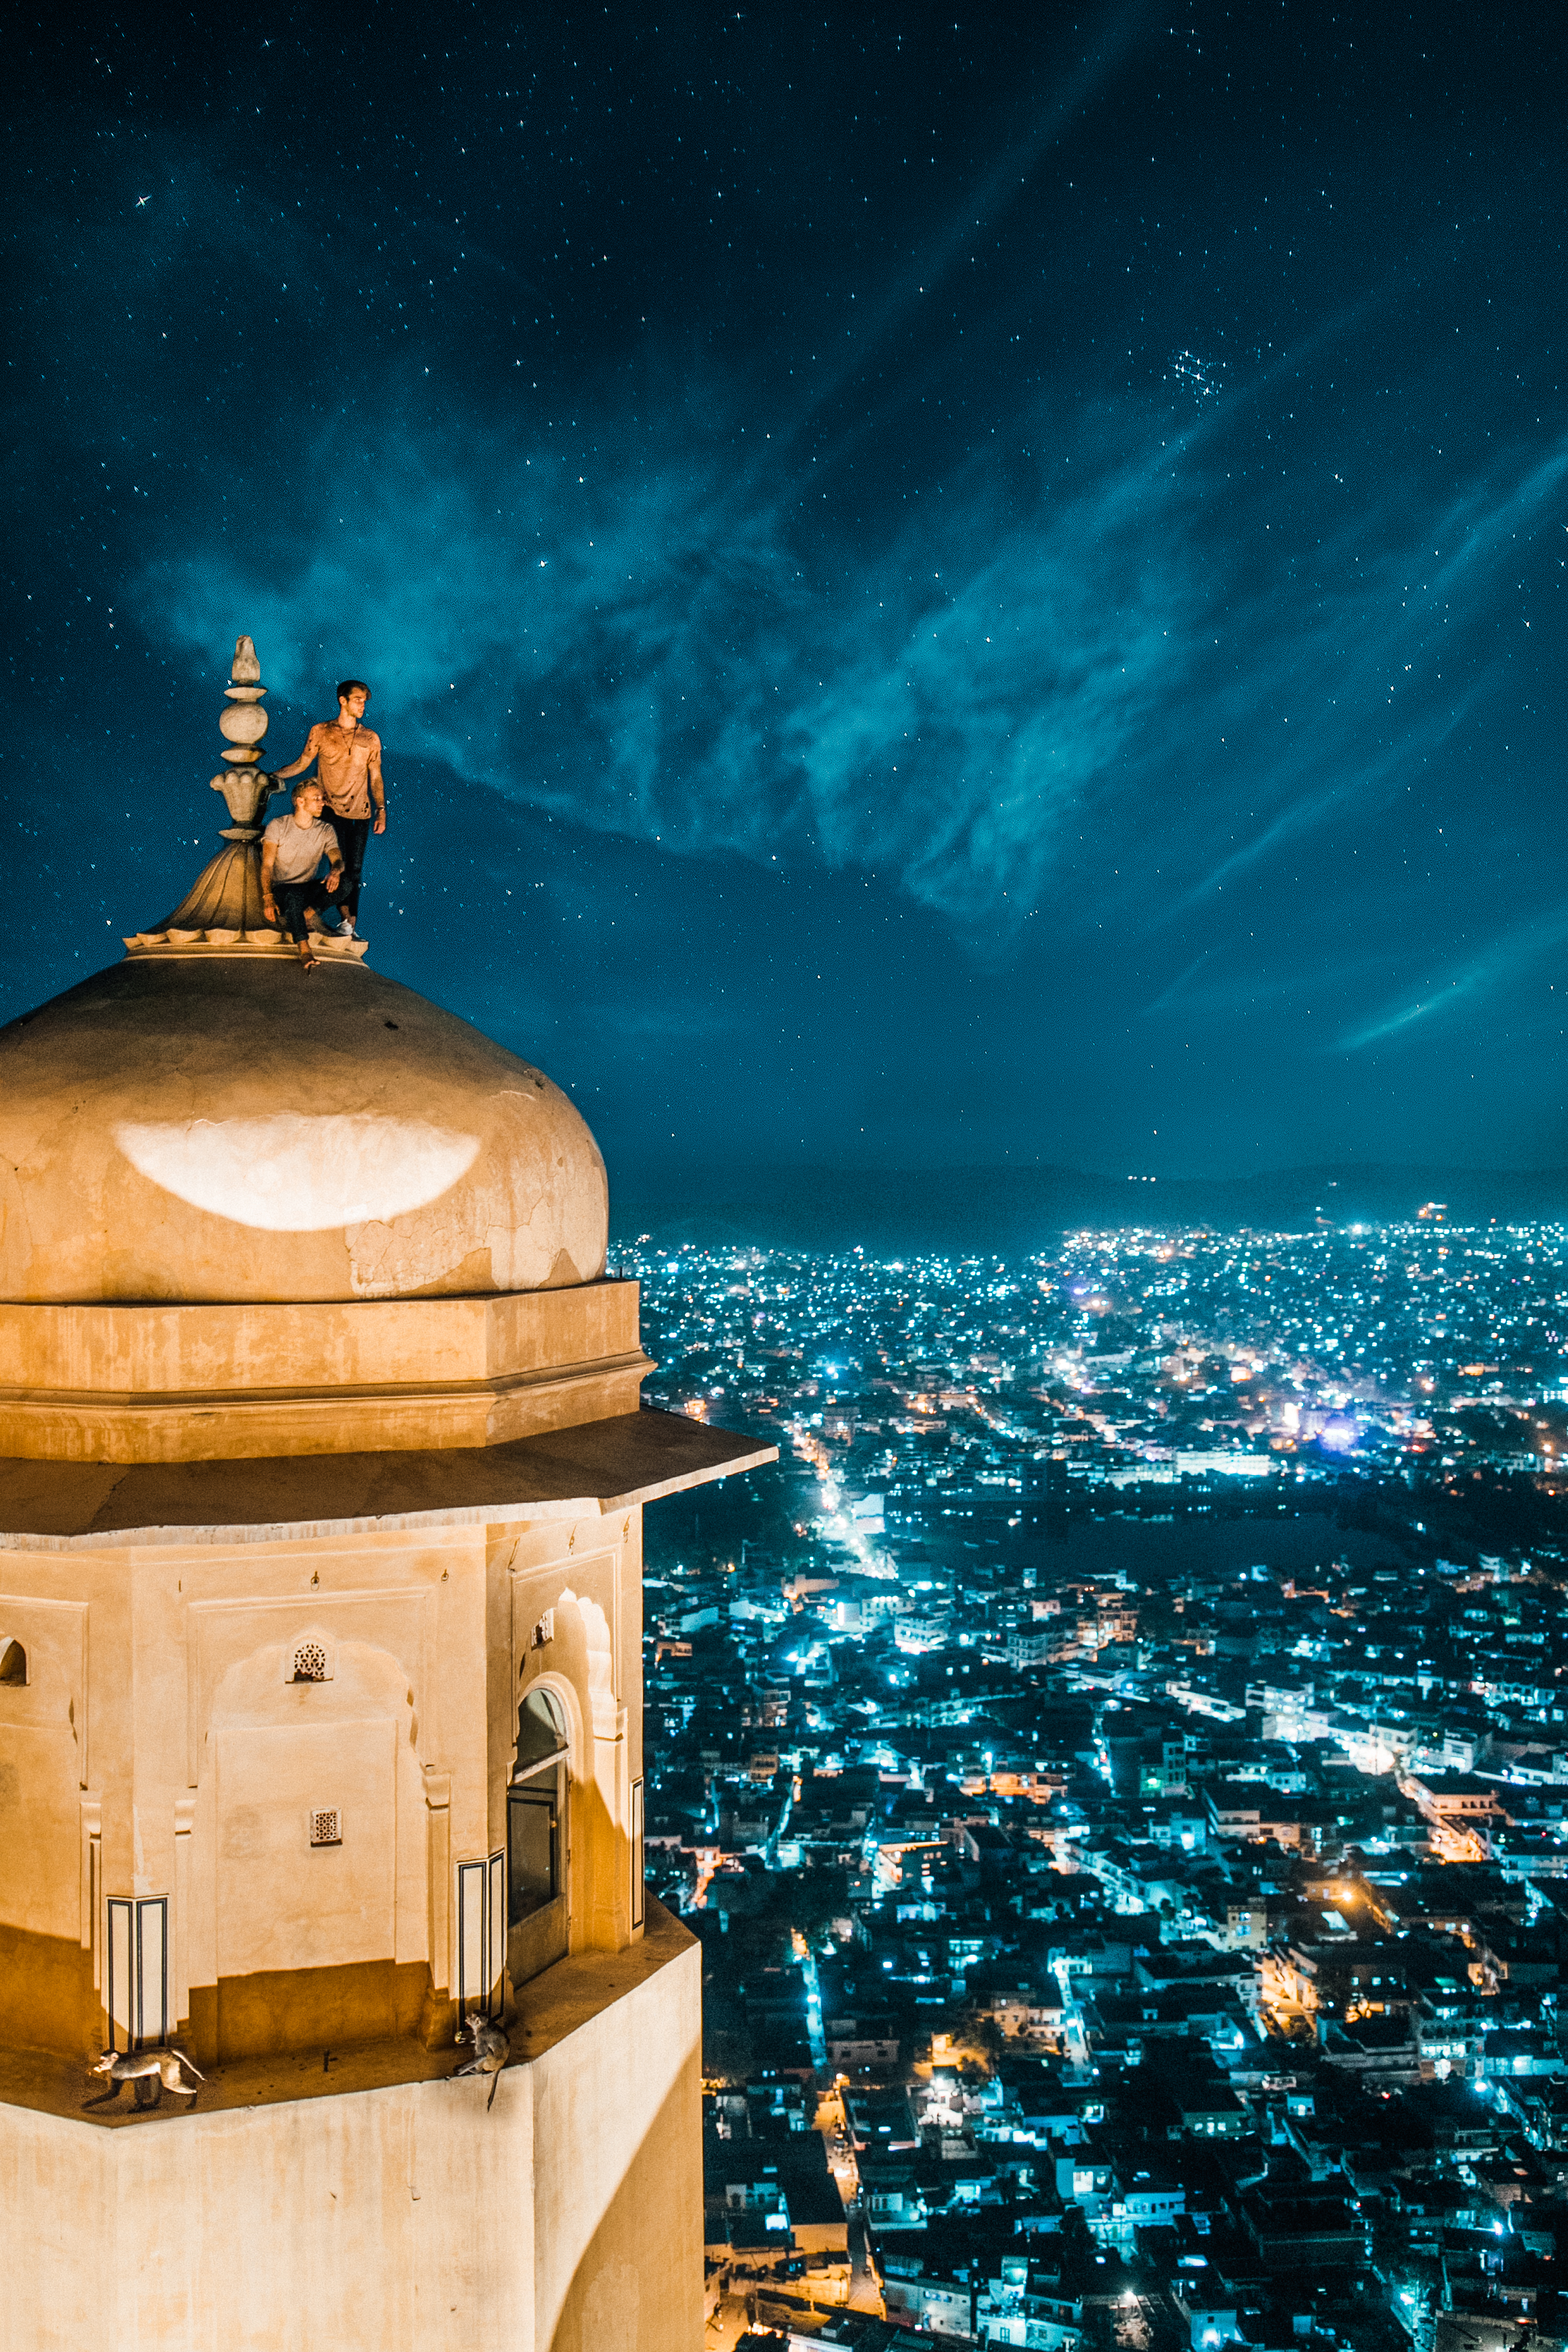 India by Jacob Riglin